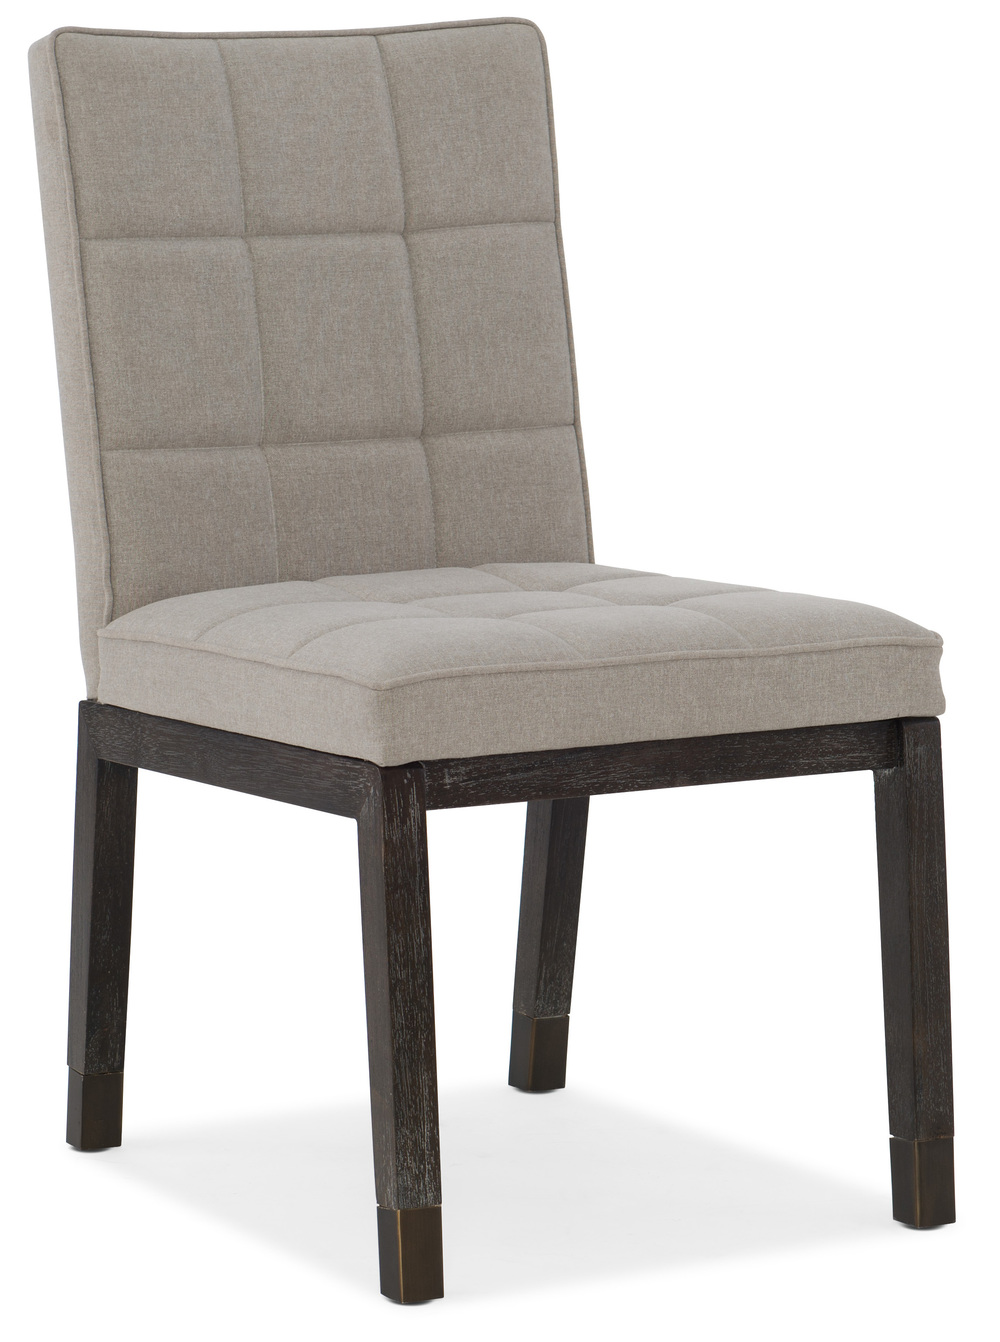 HOOKER FURNITURE CO - Cupertino Upholstered Side Chair